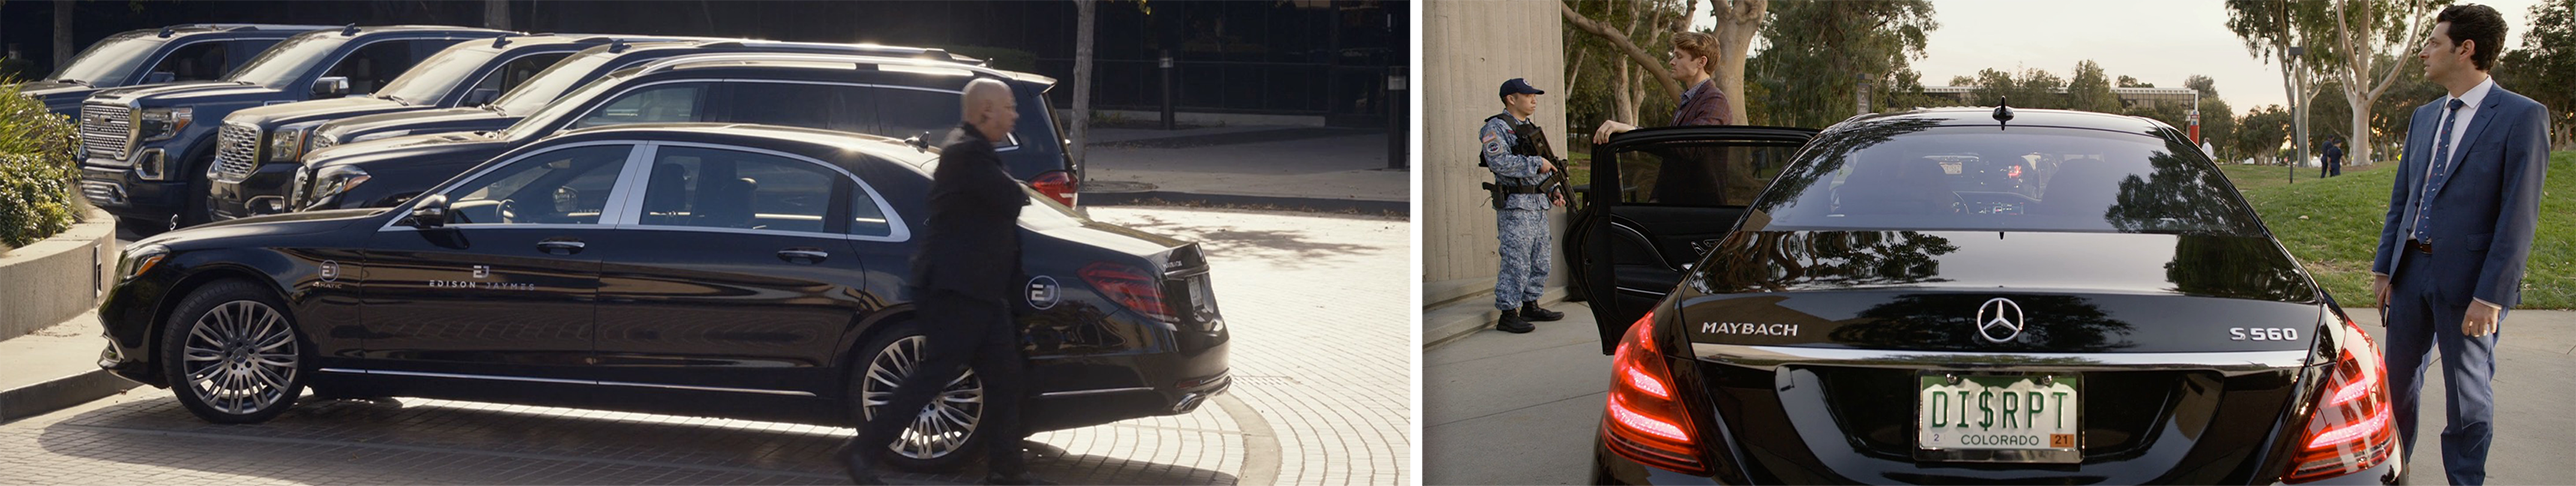 Mercedes-Maybach car product placement in Netflix's Space Force